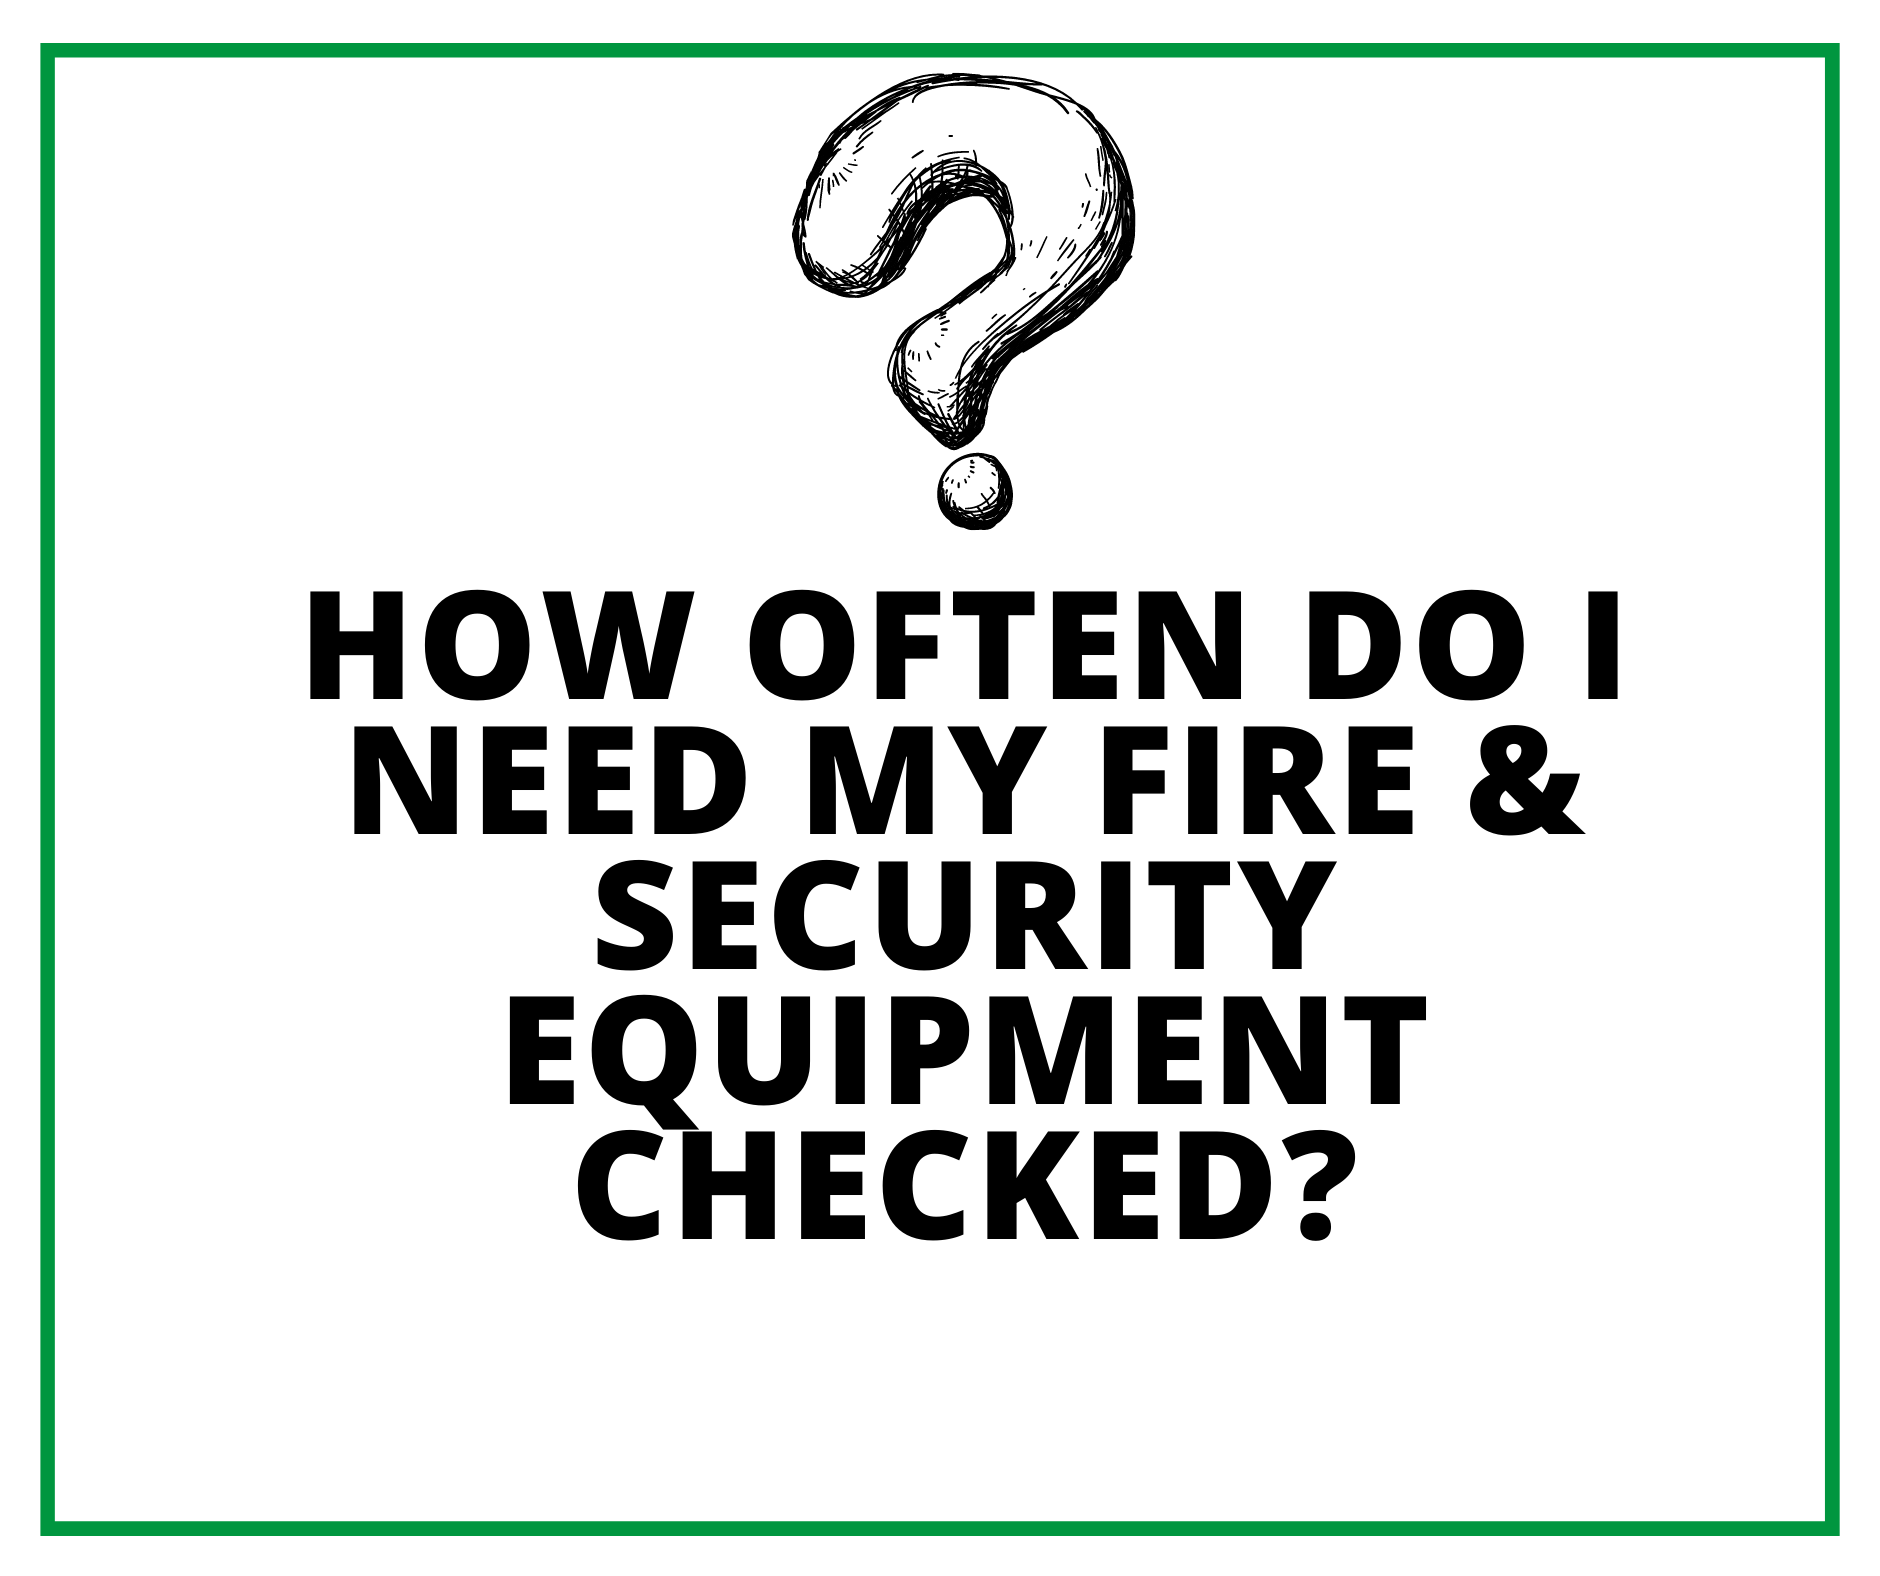 How Often Do I Need My Fire & Security Equipment Checked?